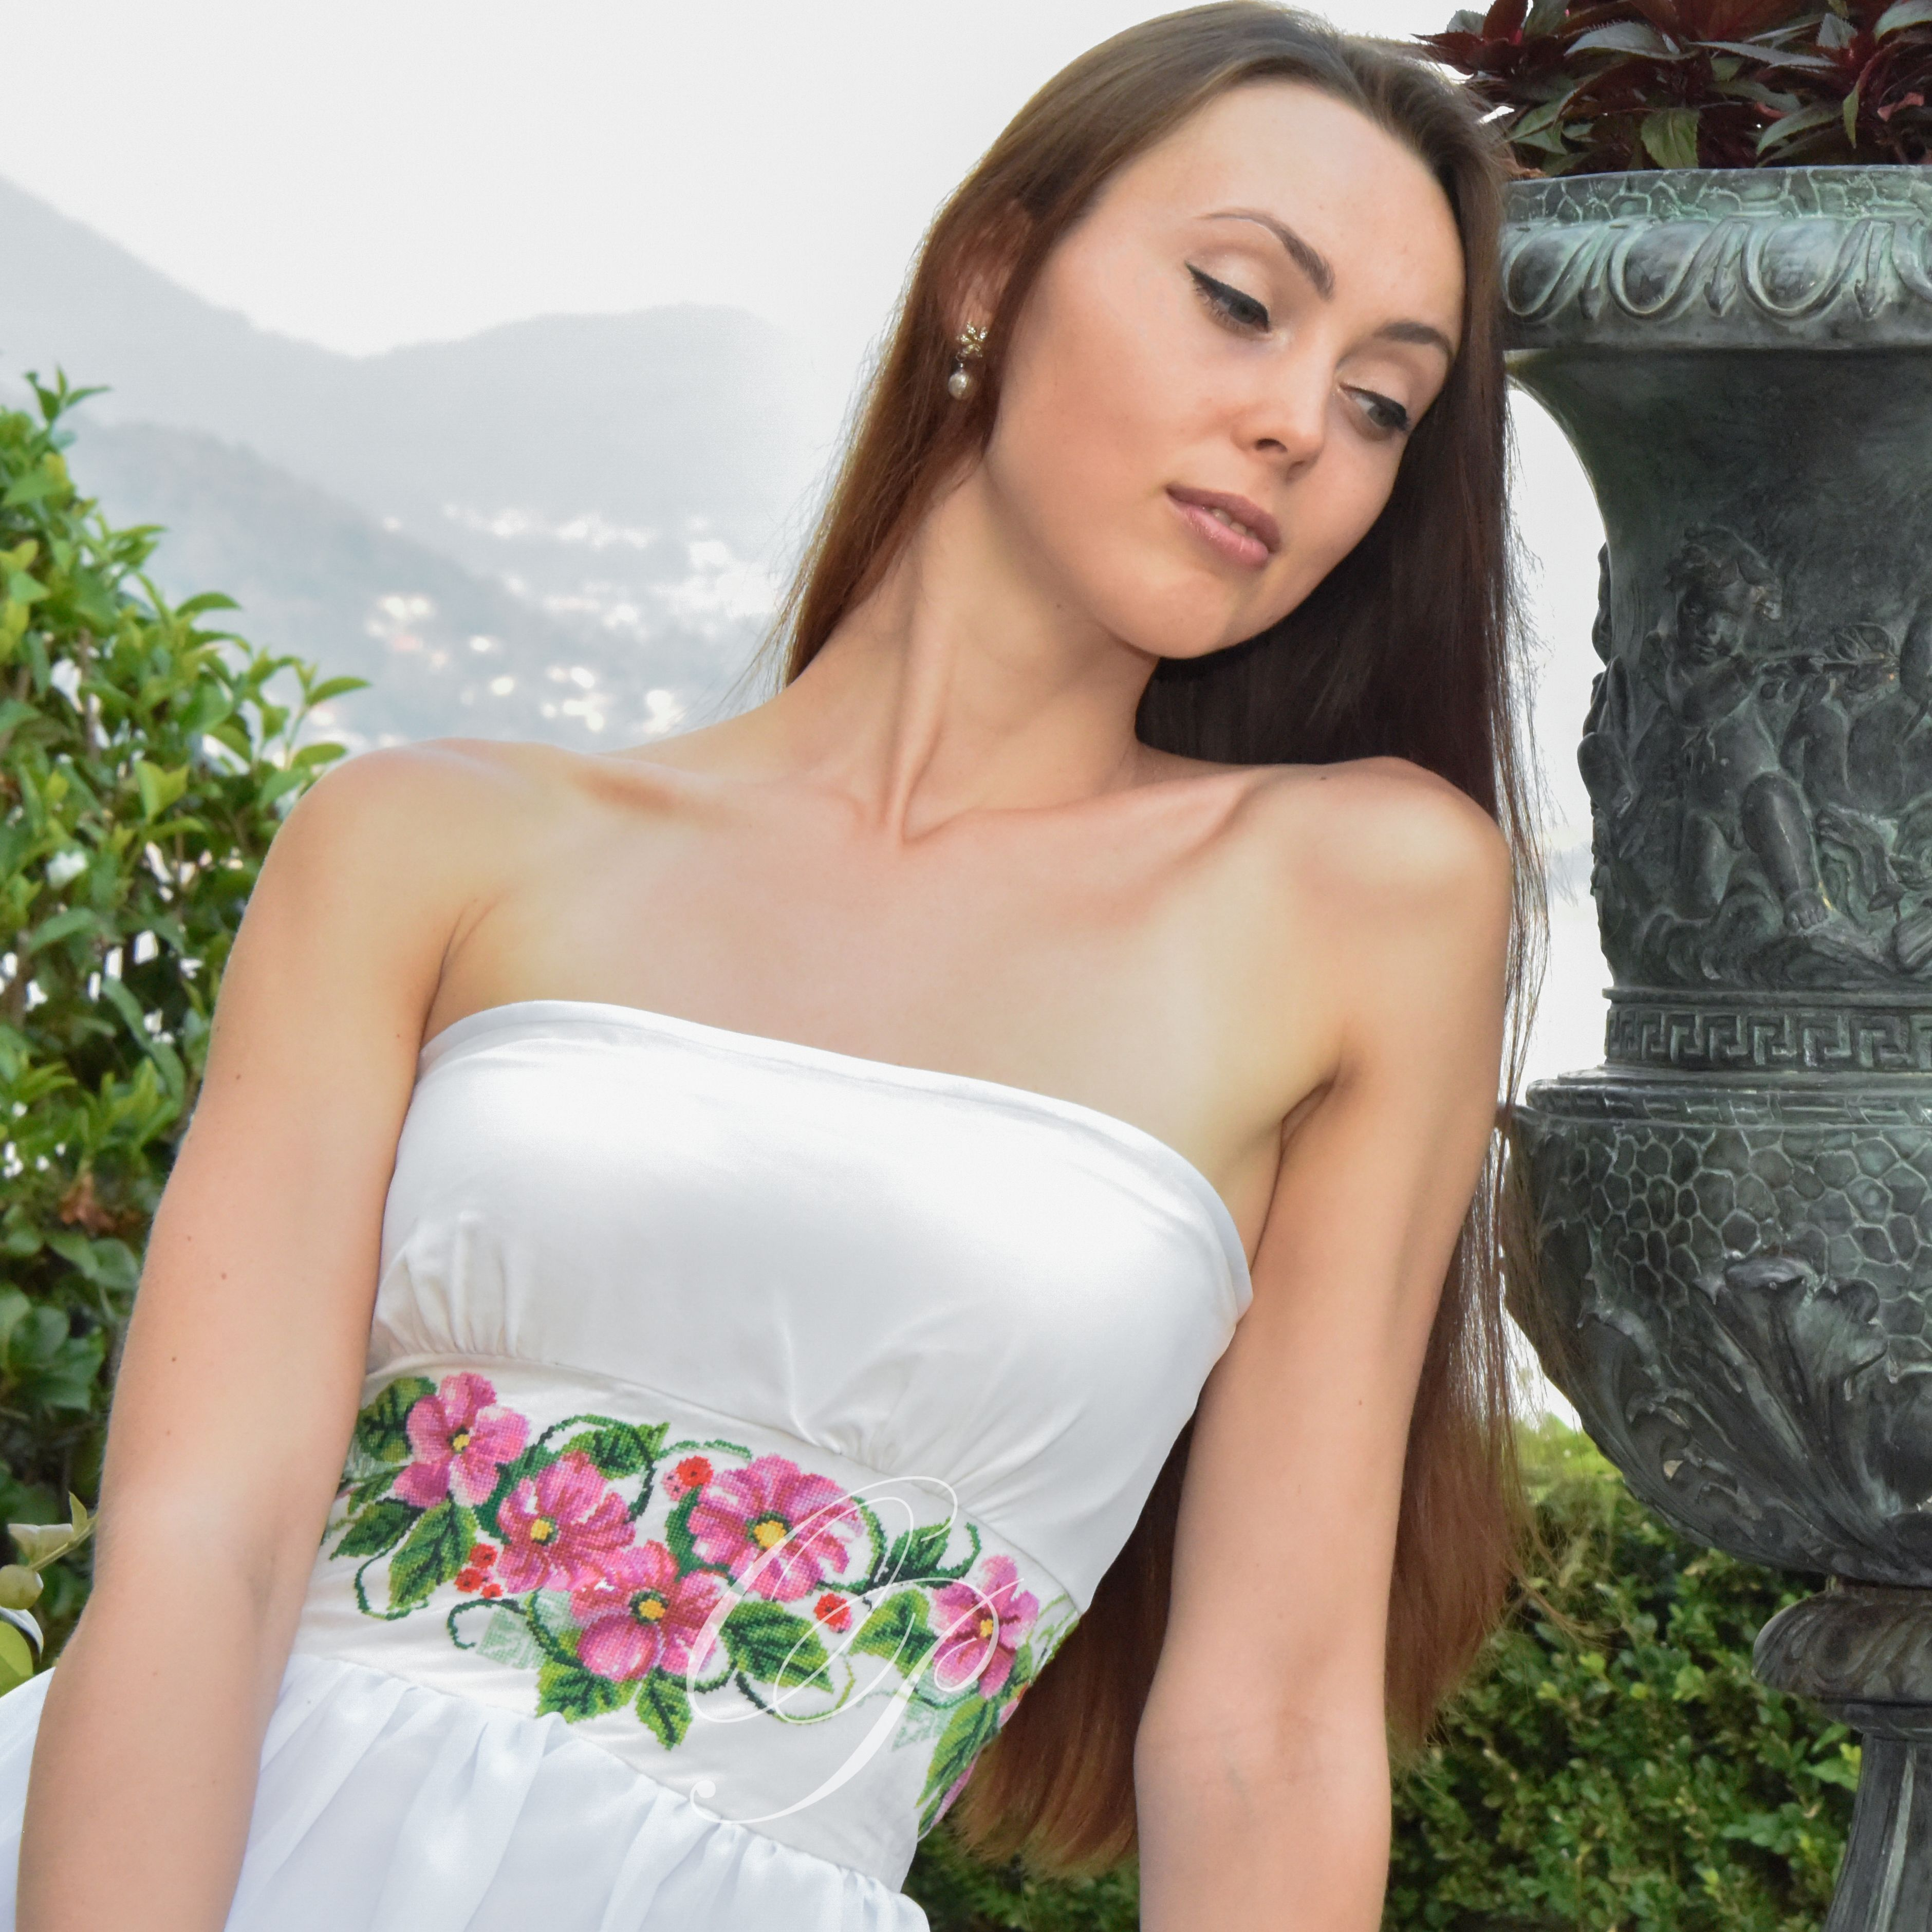 dress with embroidered flowers